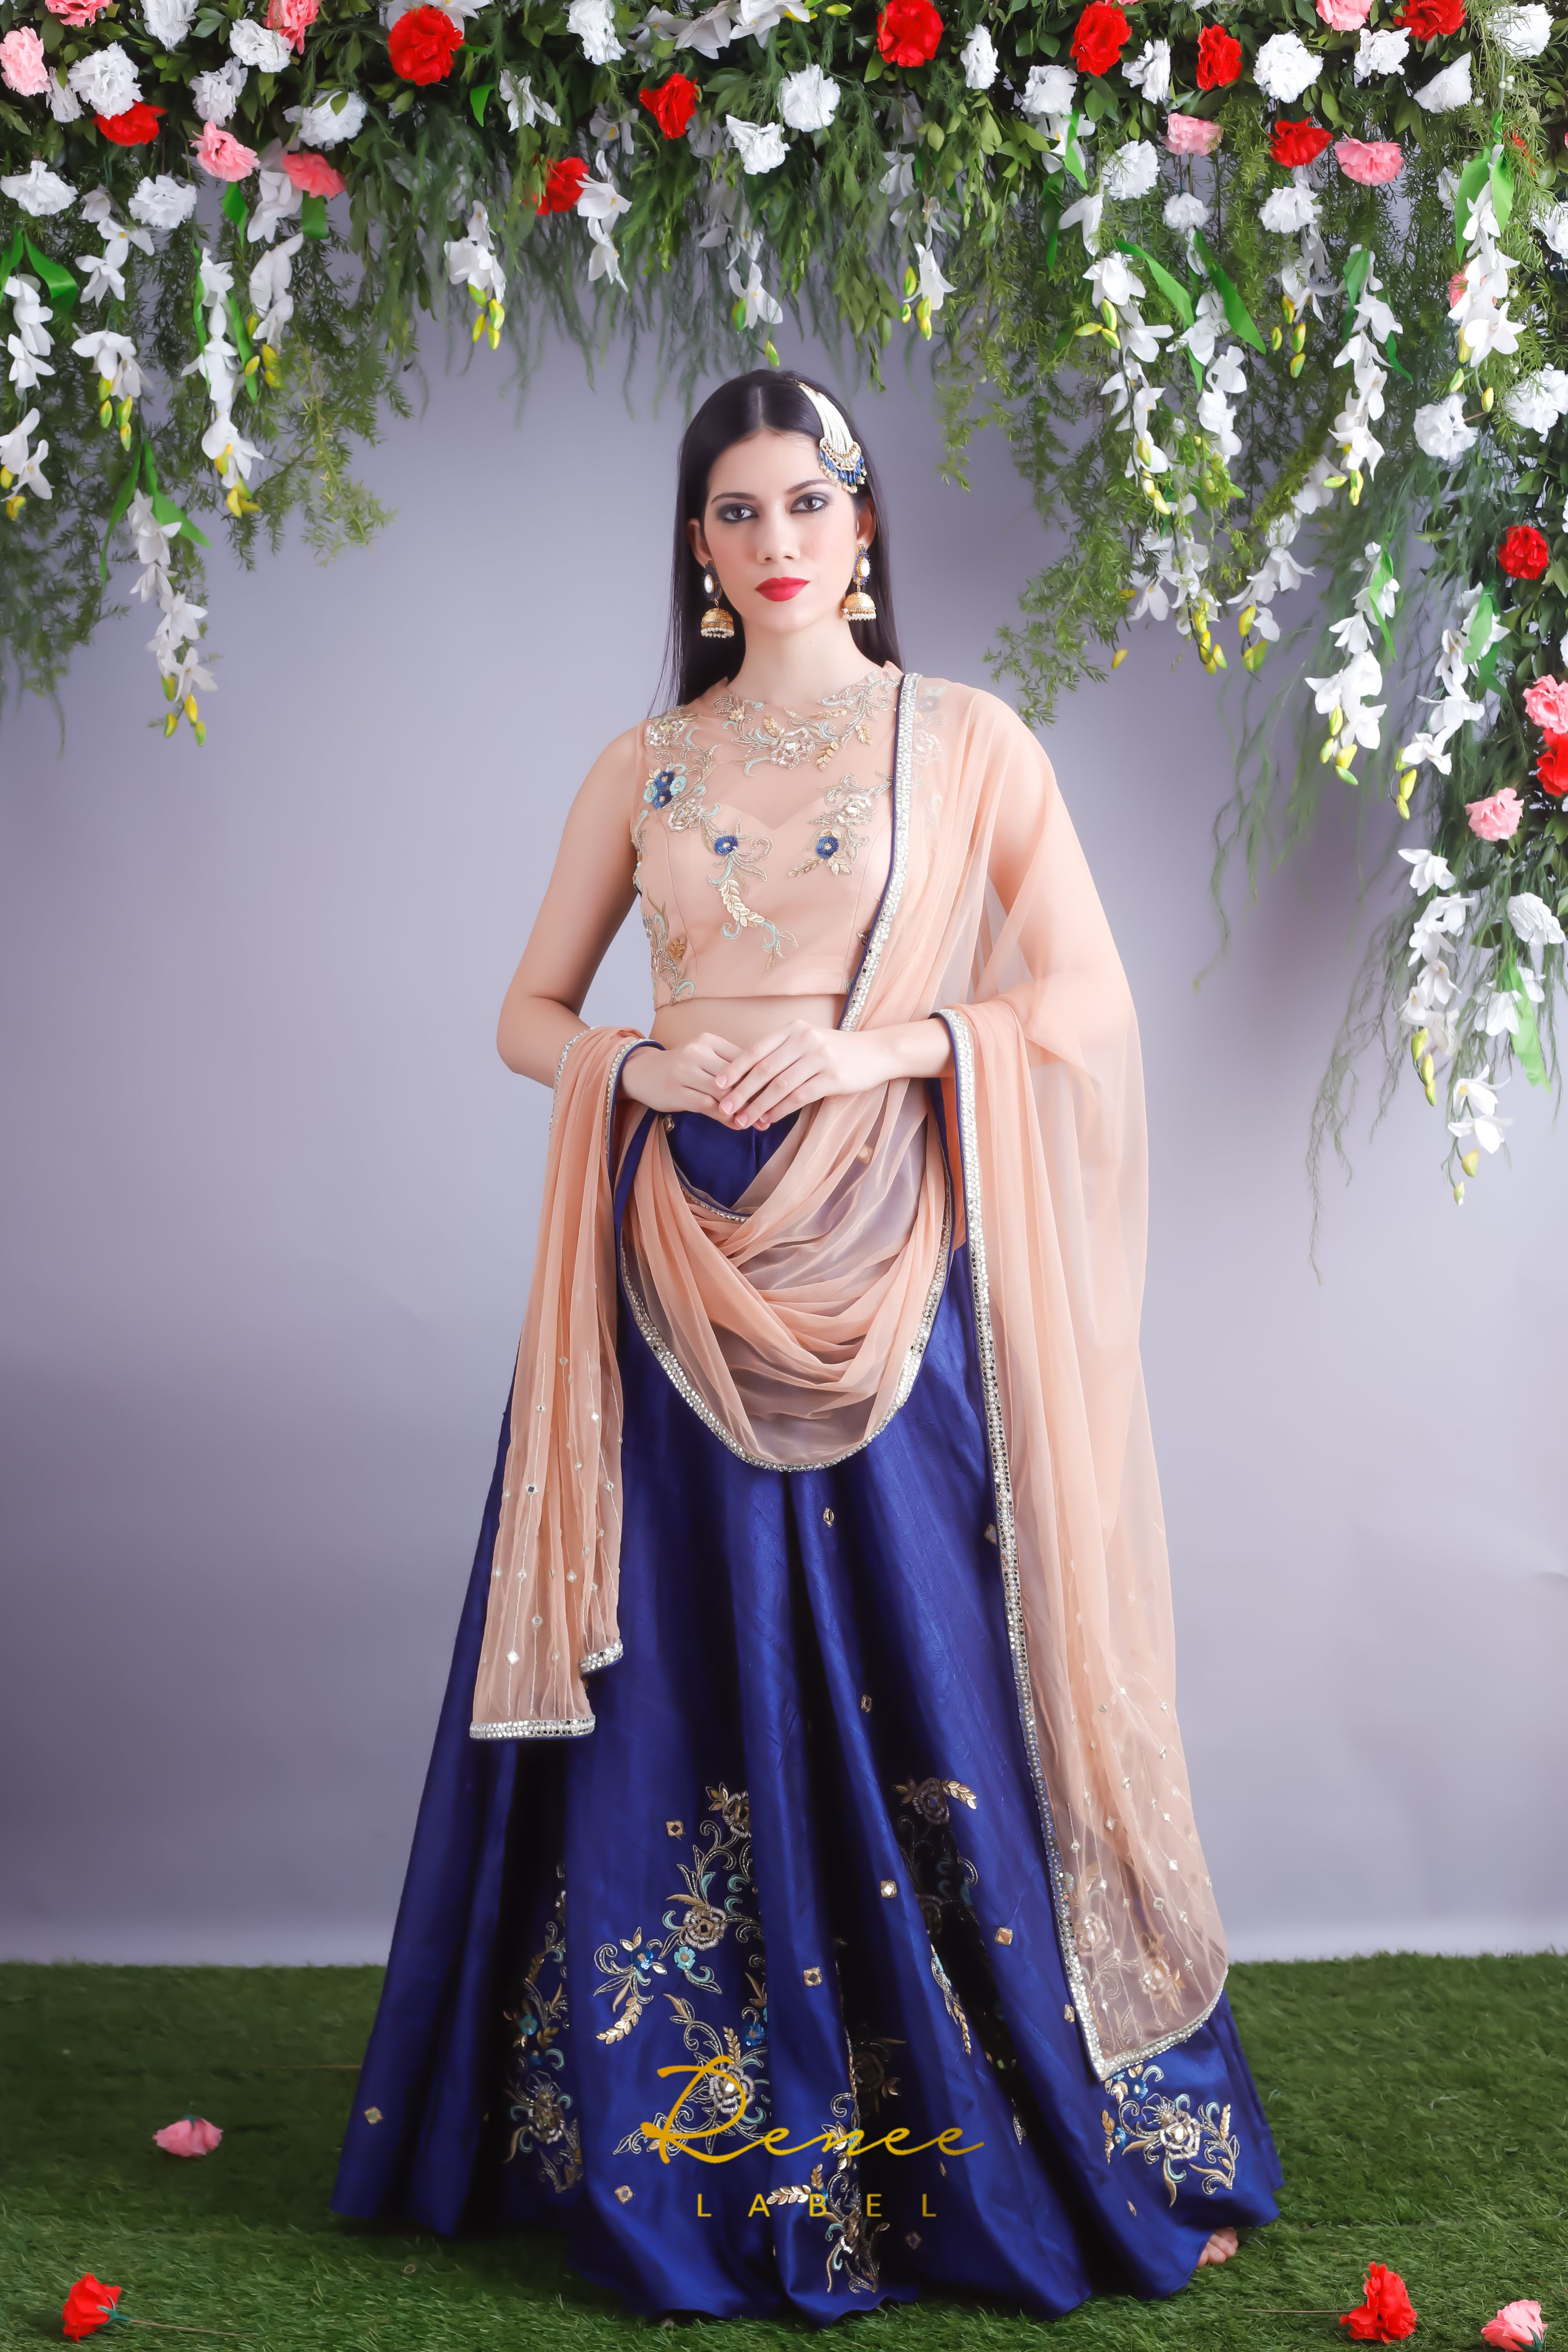 Peony lehenga set by Renee Label Traditional outfits